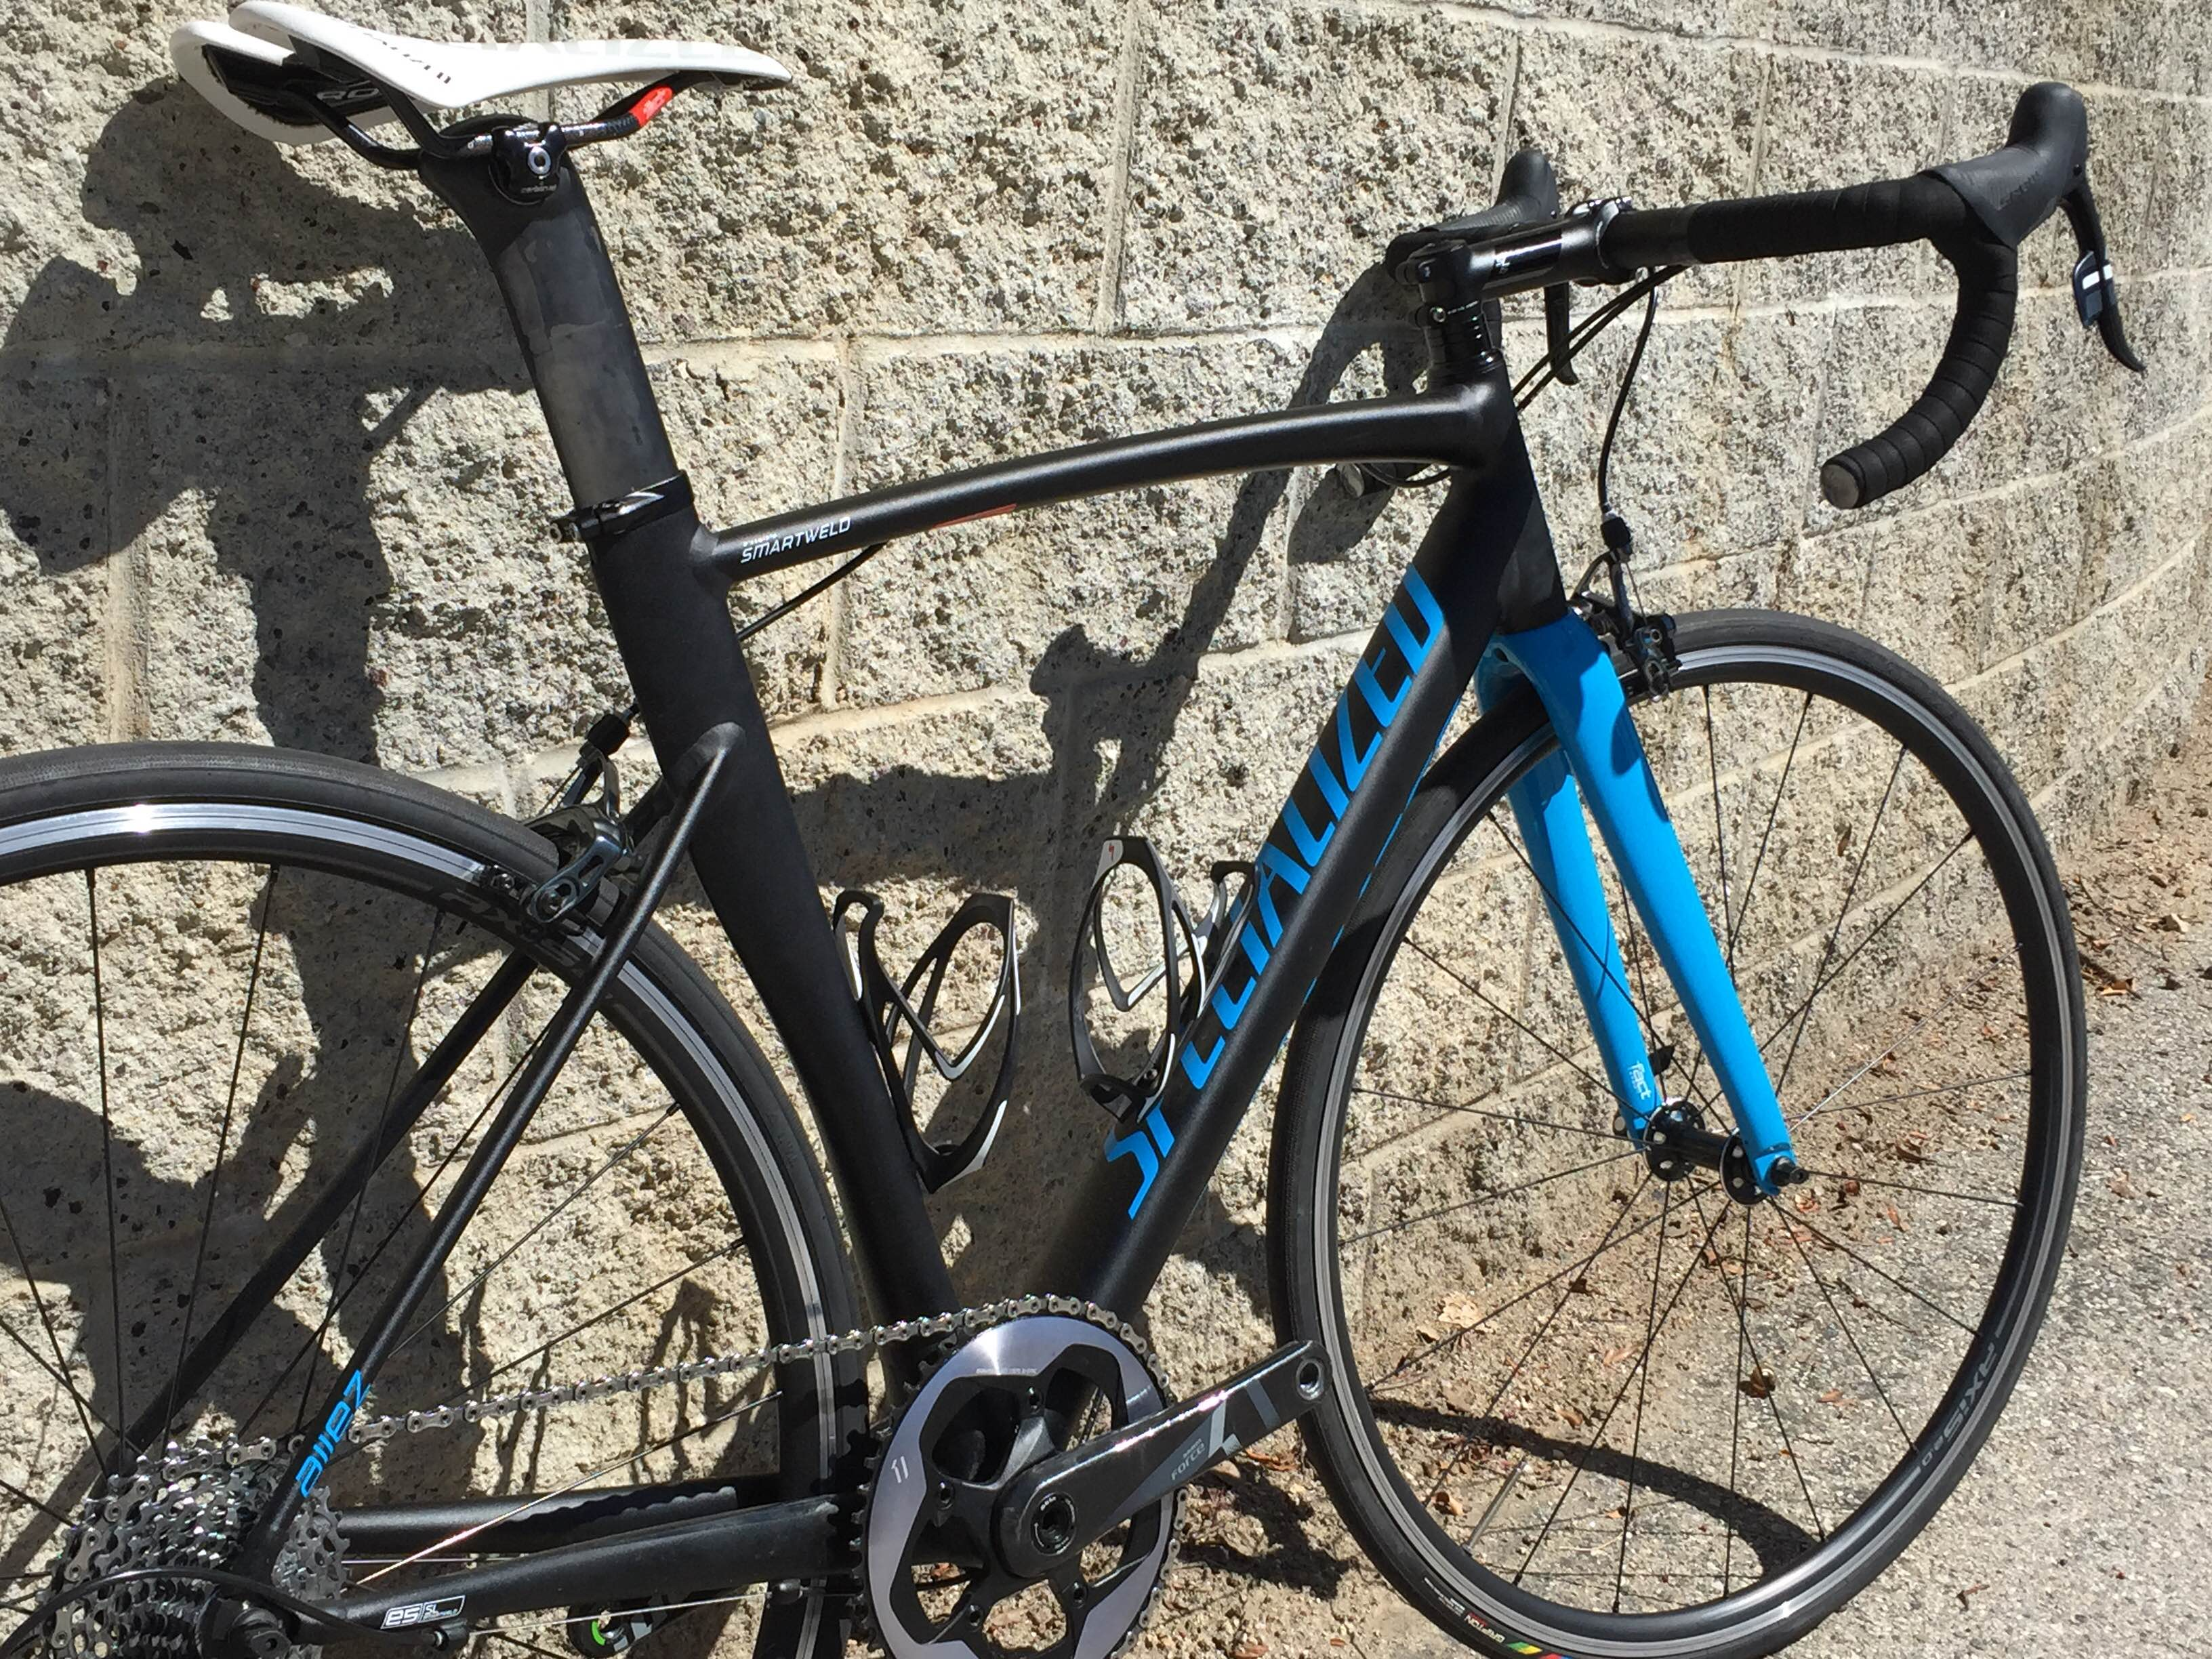 7956eae00cd Specialized Allez DSW Sprint X1 Expert In 2013 Specialized had revamped  it's thoughts on aluminum and started to manipulate the metal to compete  with the ...